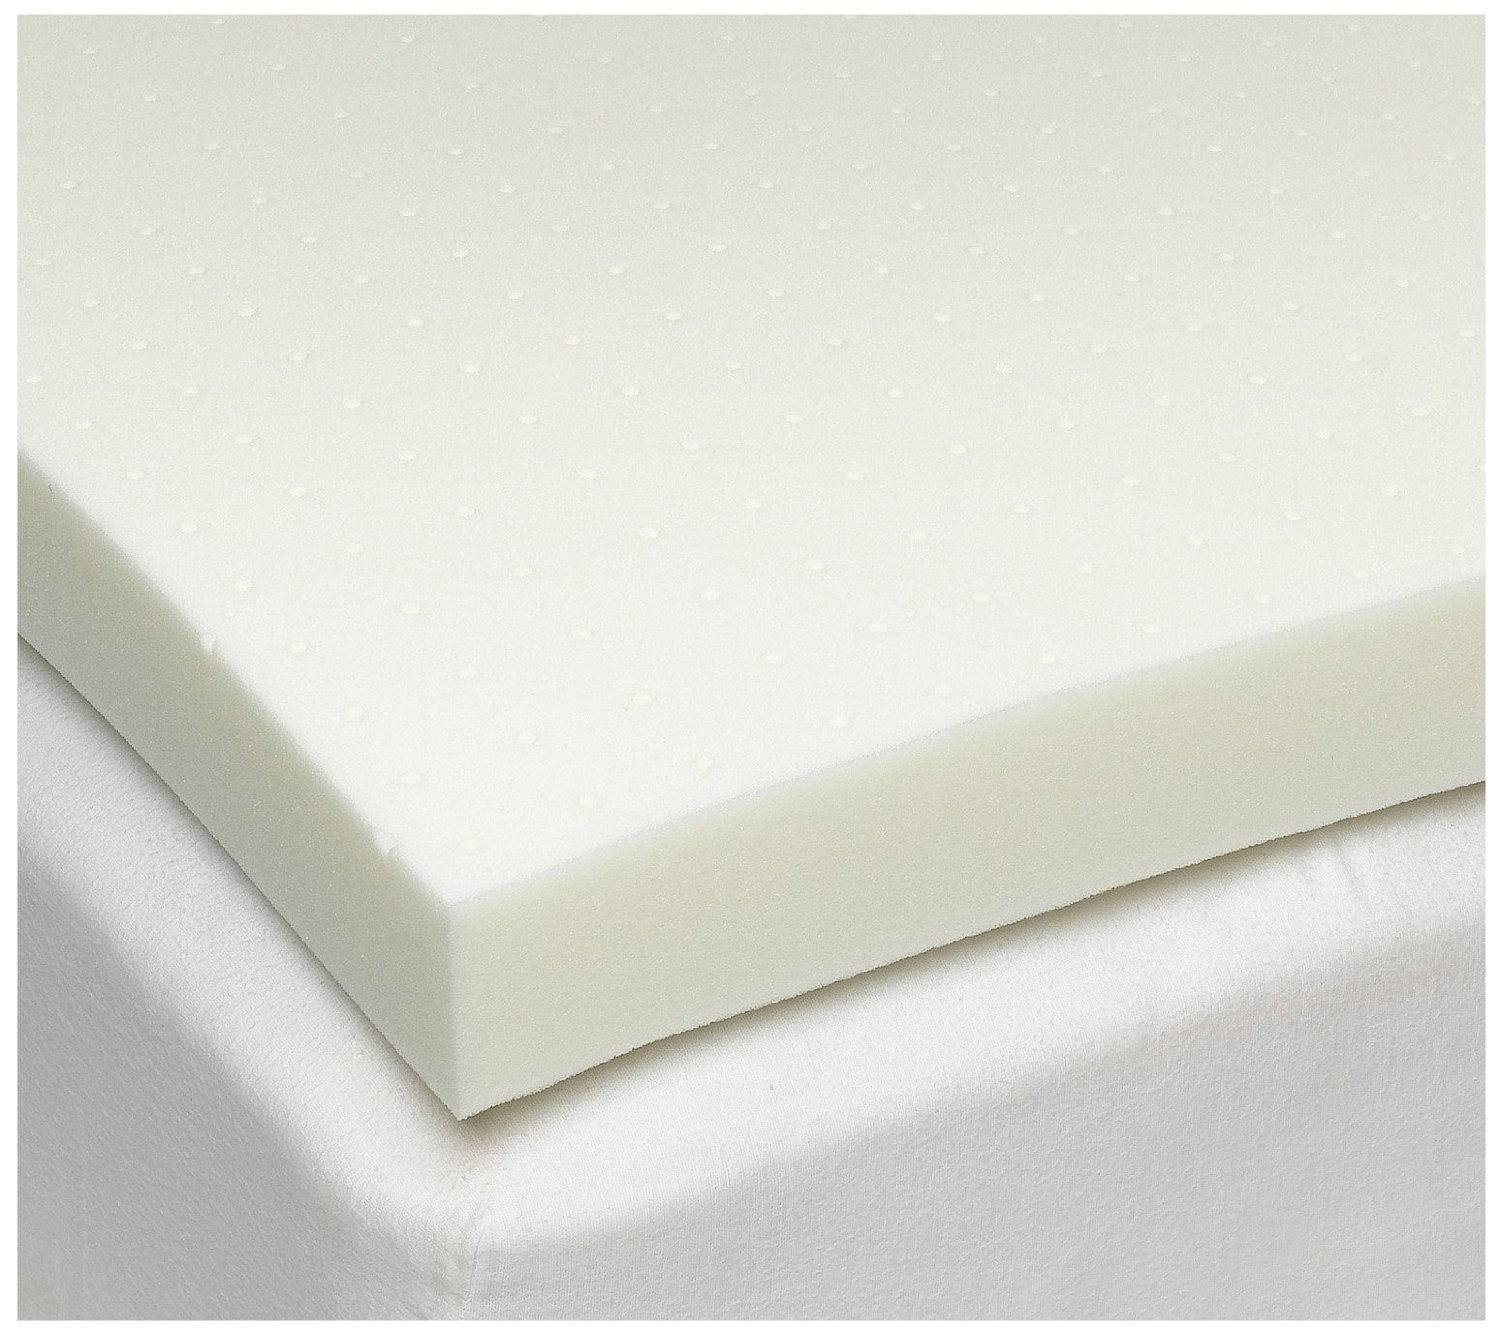 Sleep Studio 4 Inch Ventilated Memory Foam Mattress Topper 6705